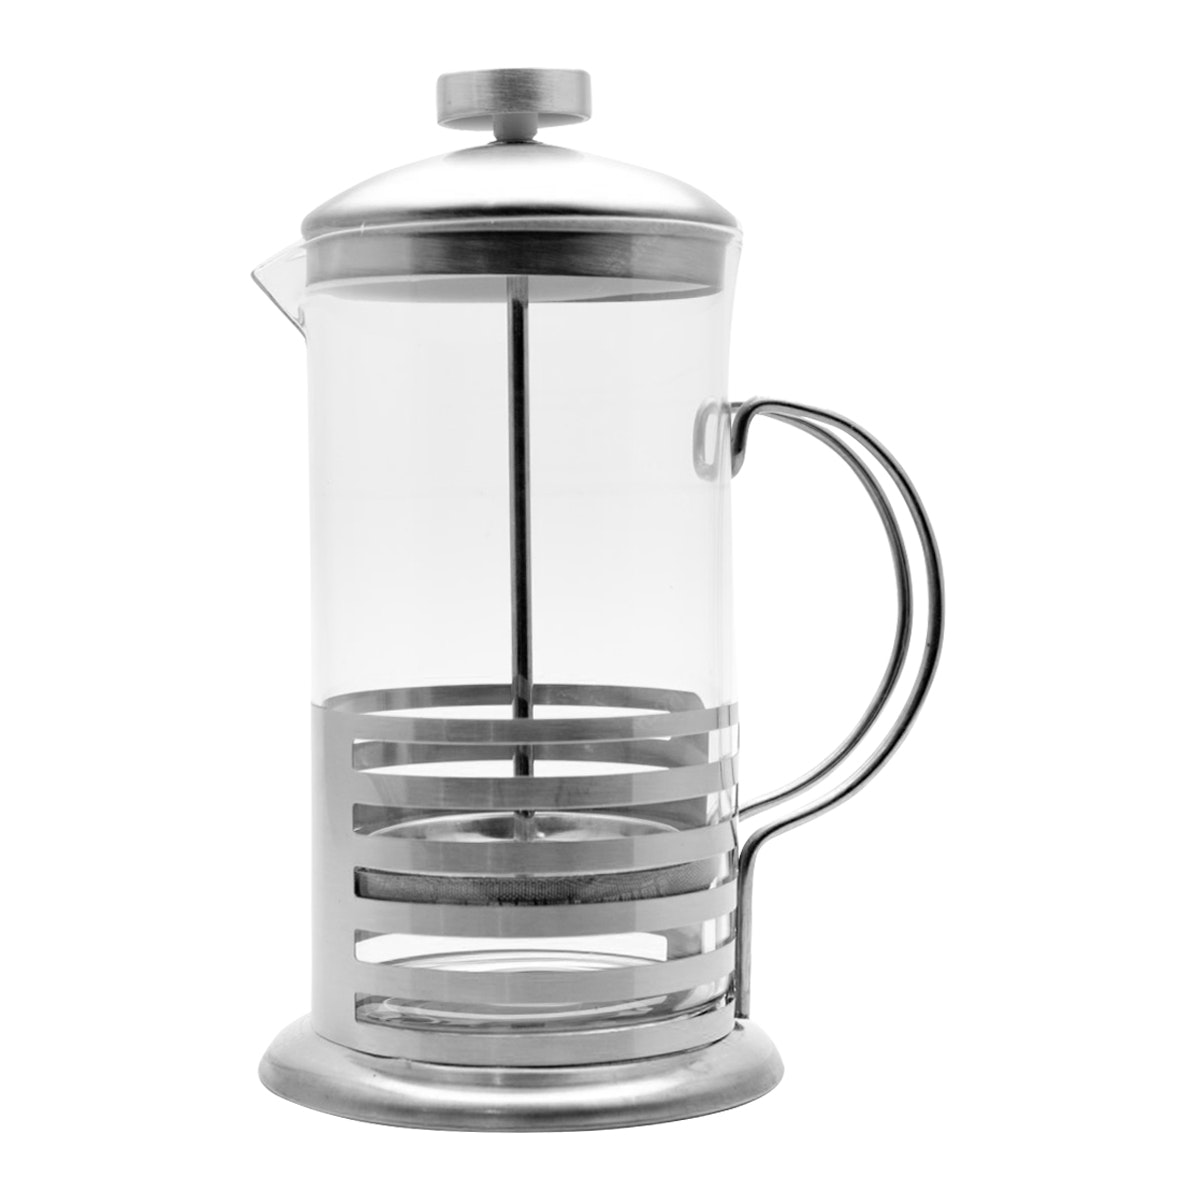 OEM French Press Plunger Stainless Extra Finish 600 Ml YT600 - Perak